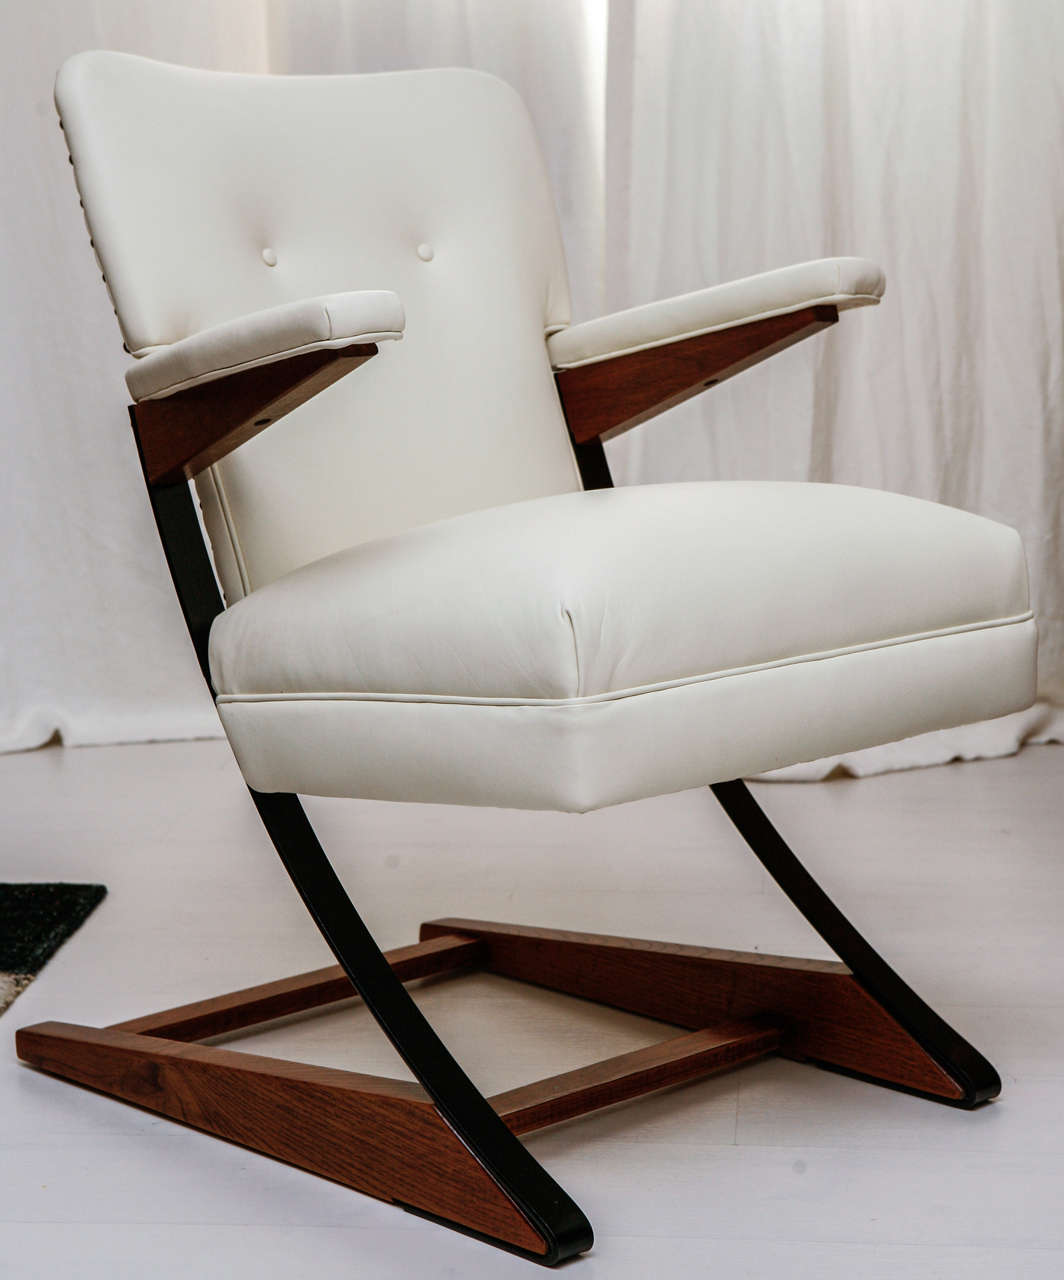 Boasting a modern white upholstery with grommets all along the backside's edge and a pair of button tufts on the frontside of the chair, this 1960s rocker is a rare and wonderful piece! The frame is a combination of steel and wood and the rocking